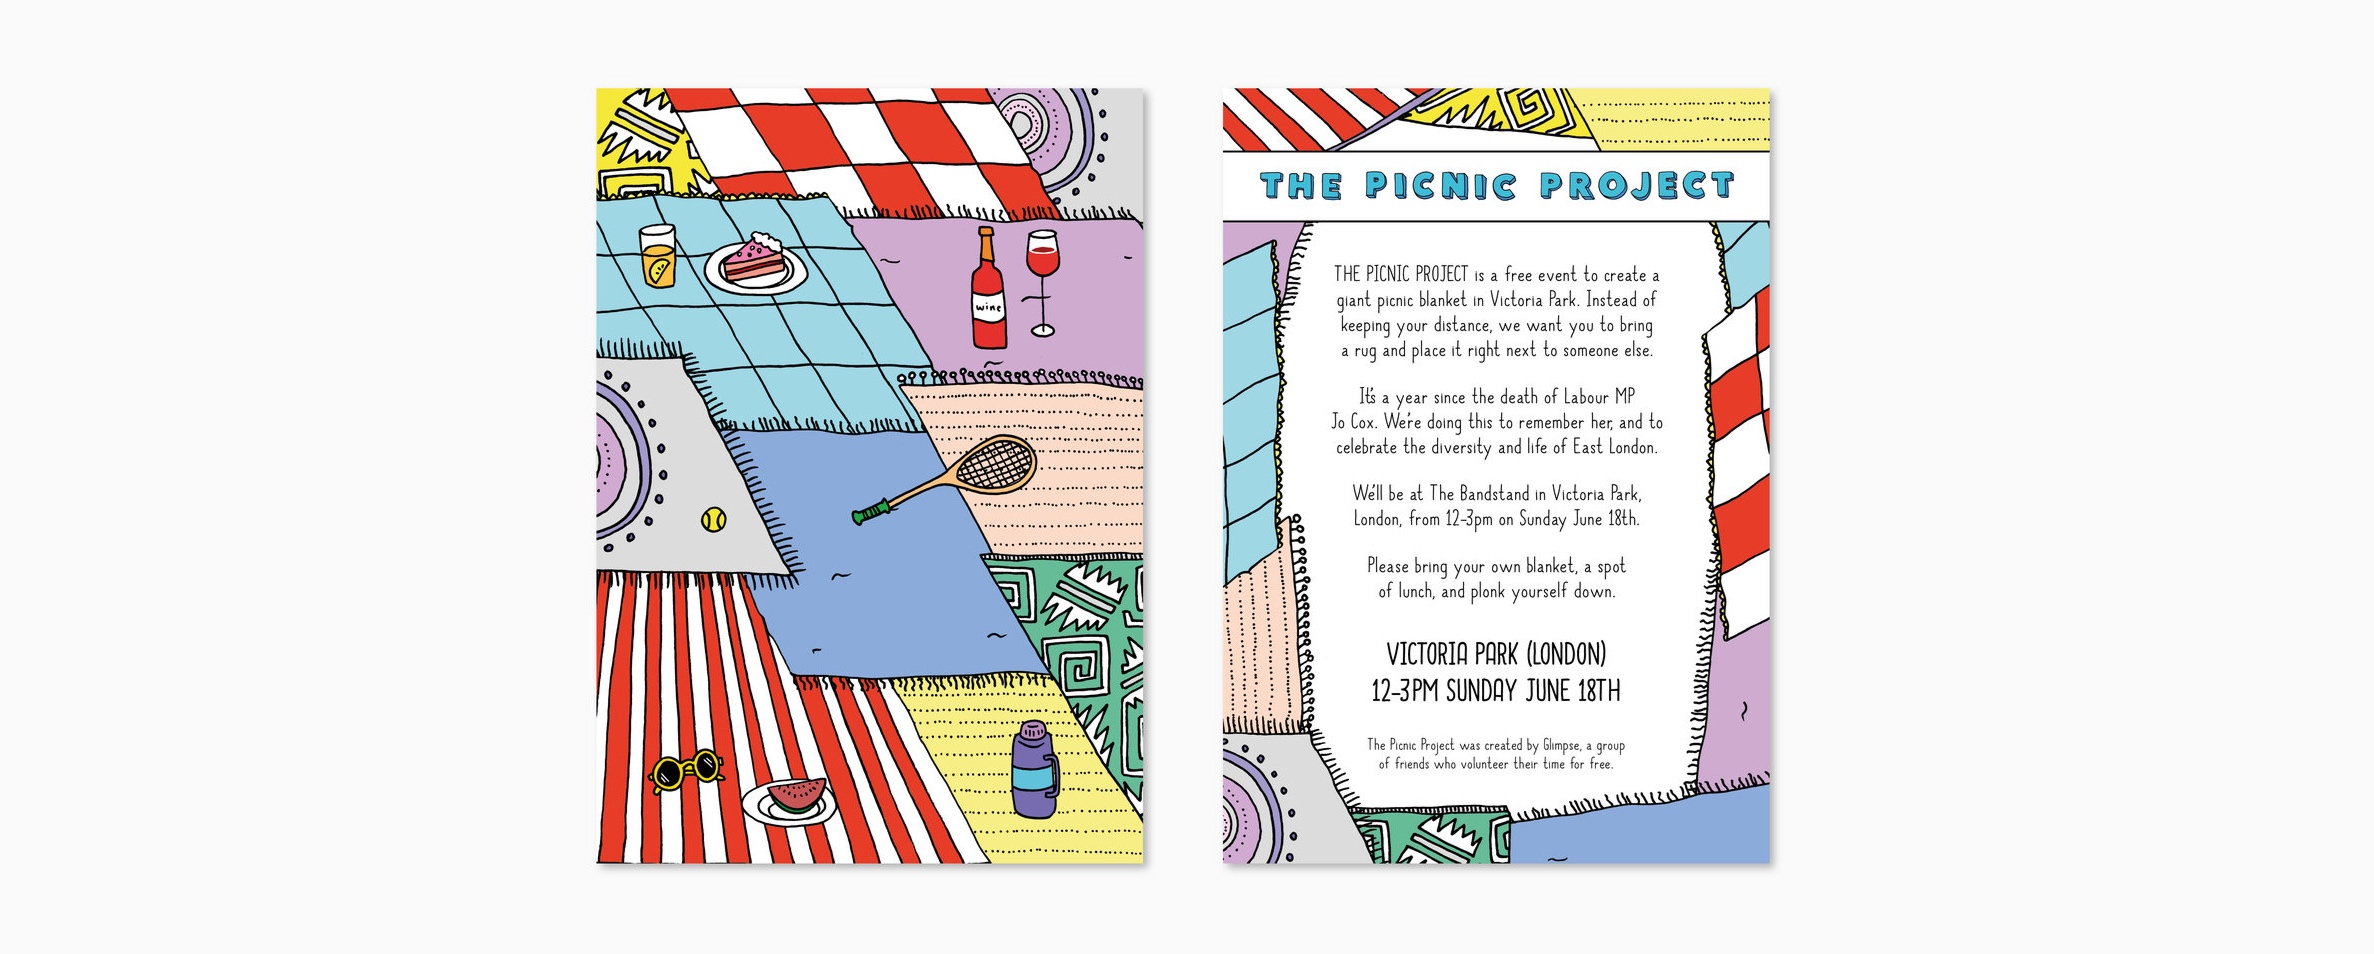 Glimpse_The-Picnic-Project_Flyer-Design-Illustration.jpg